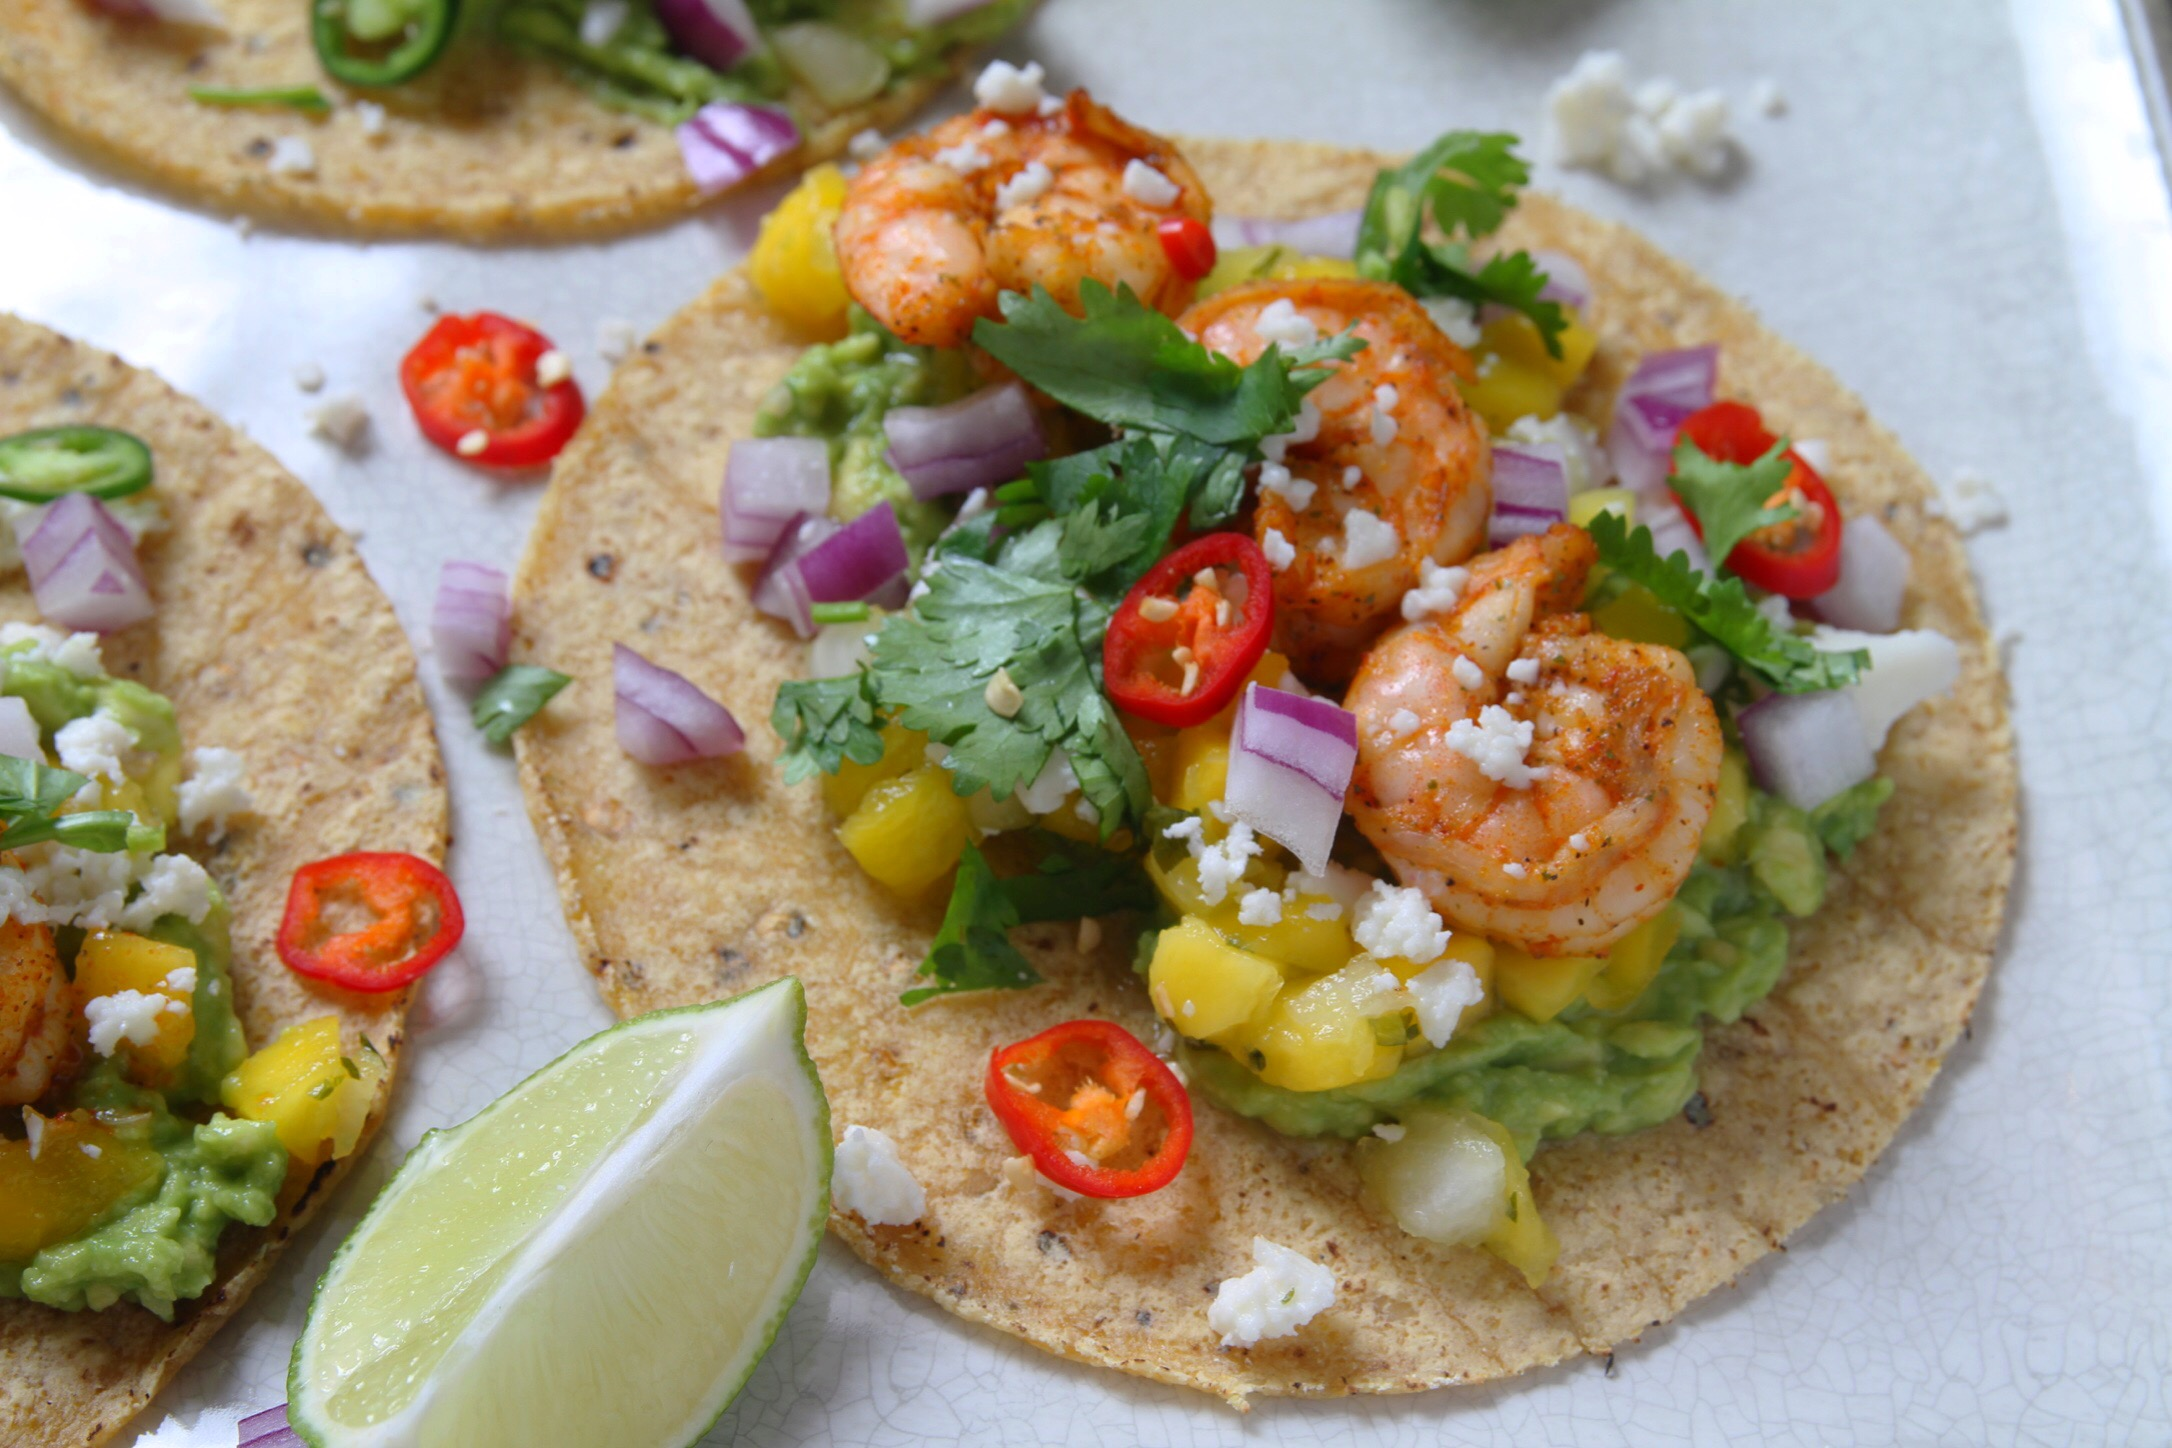 Cajun shrimp tacos with mango salsa, guacamole, hot peppers, red onion, and queso fresco. Plus cilantro! And lime garnish.